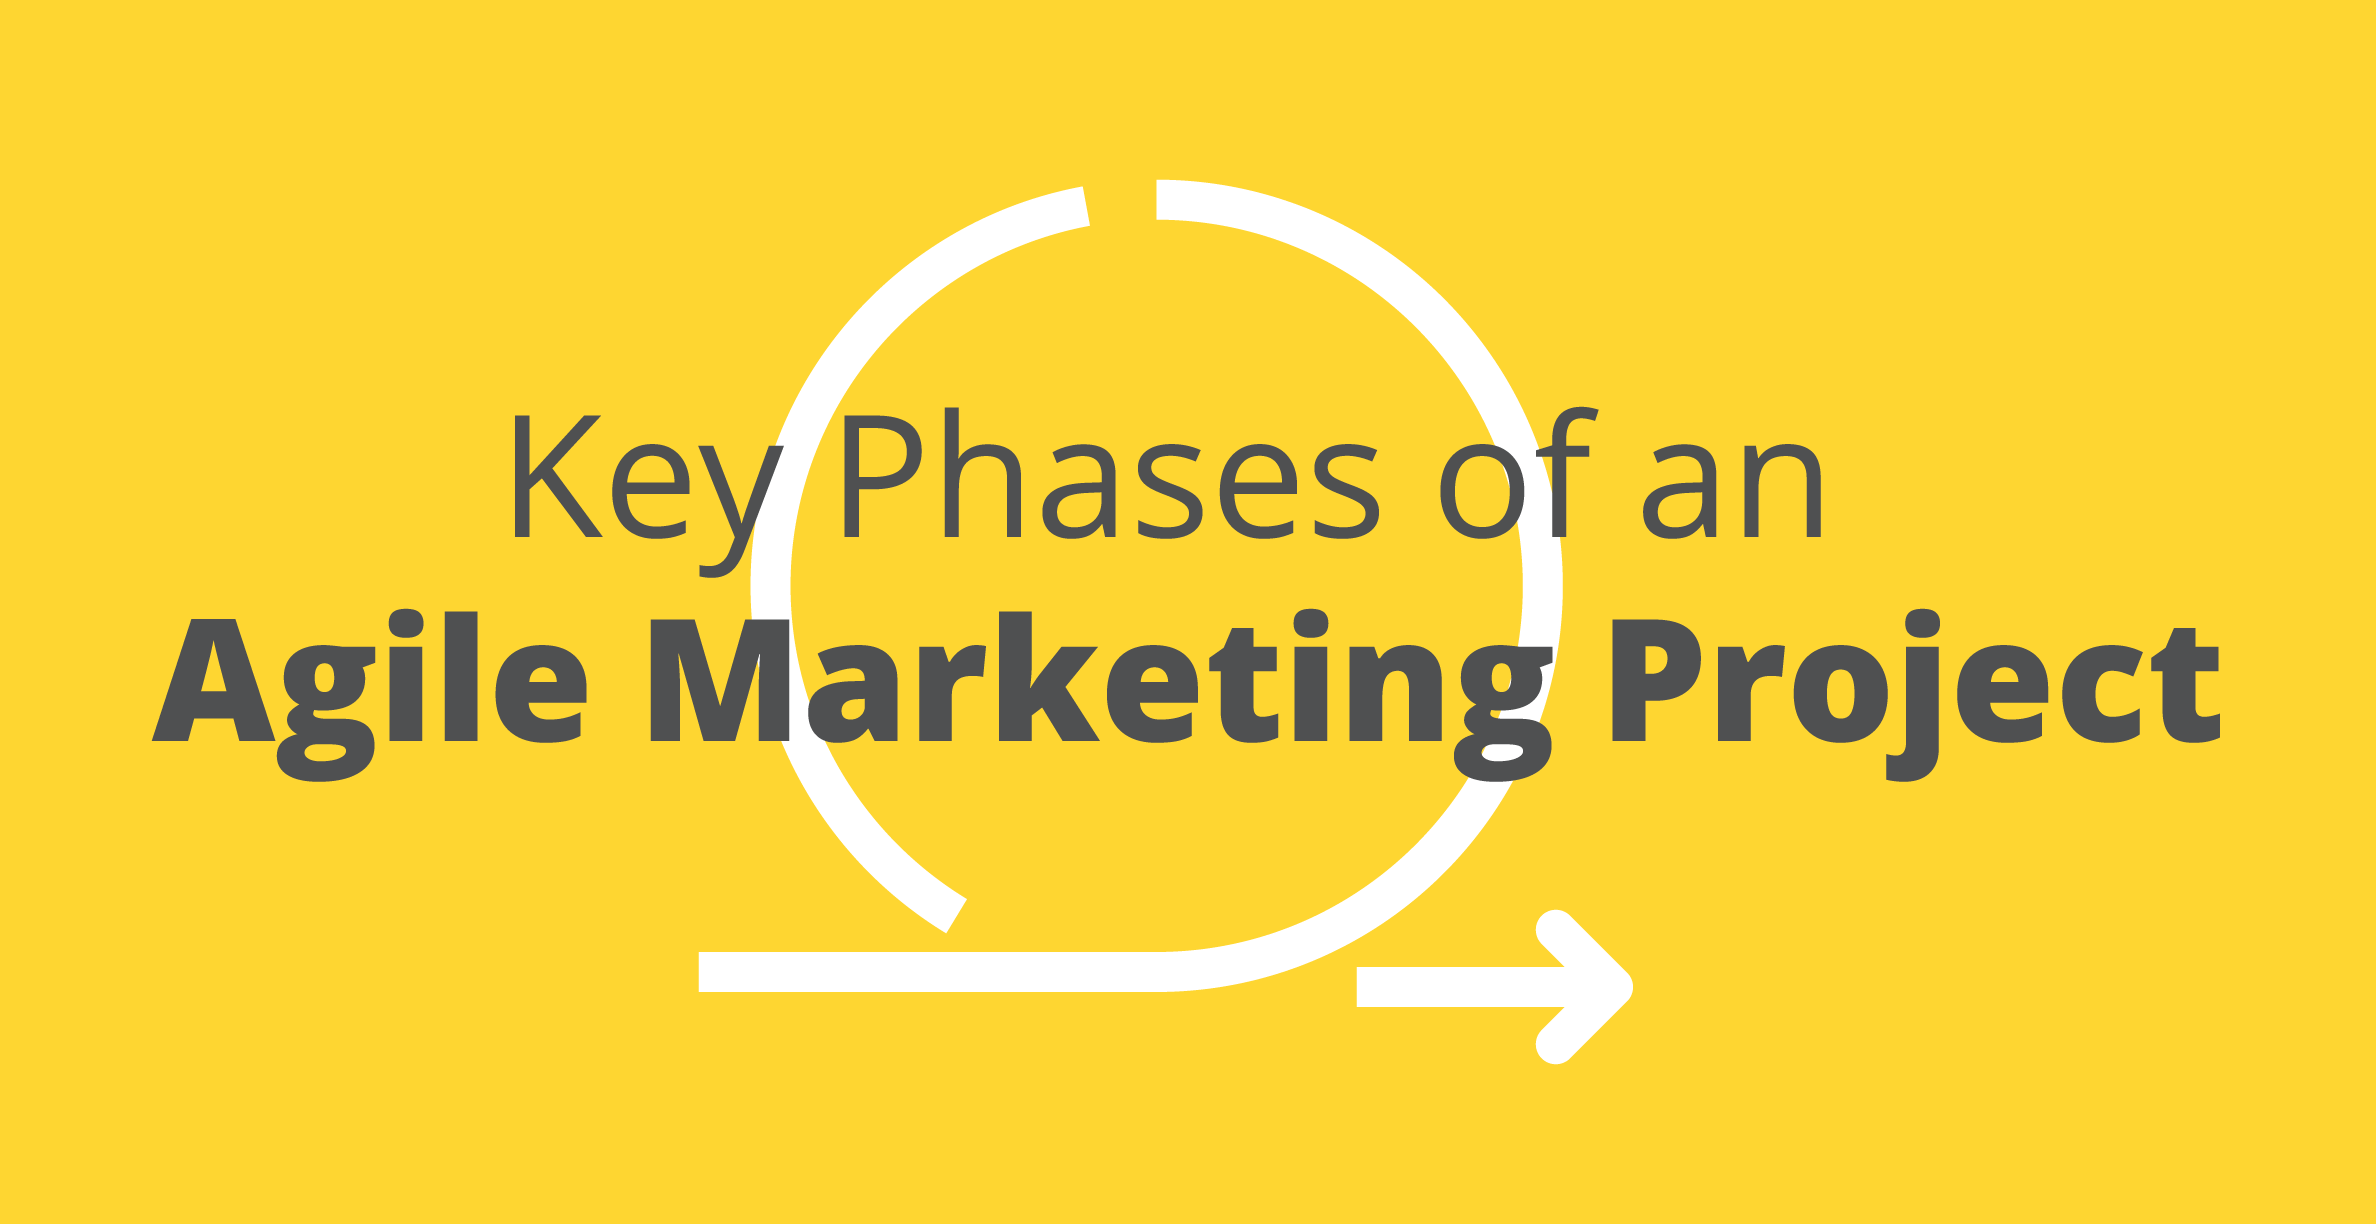 Blog-Key-Phases-Of-An-Agile-Marketing-Project.png